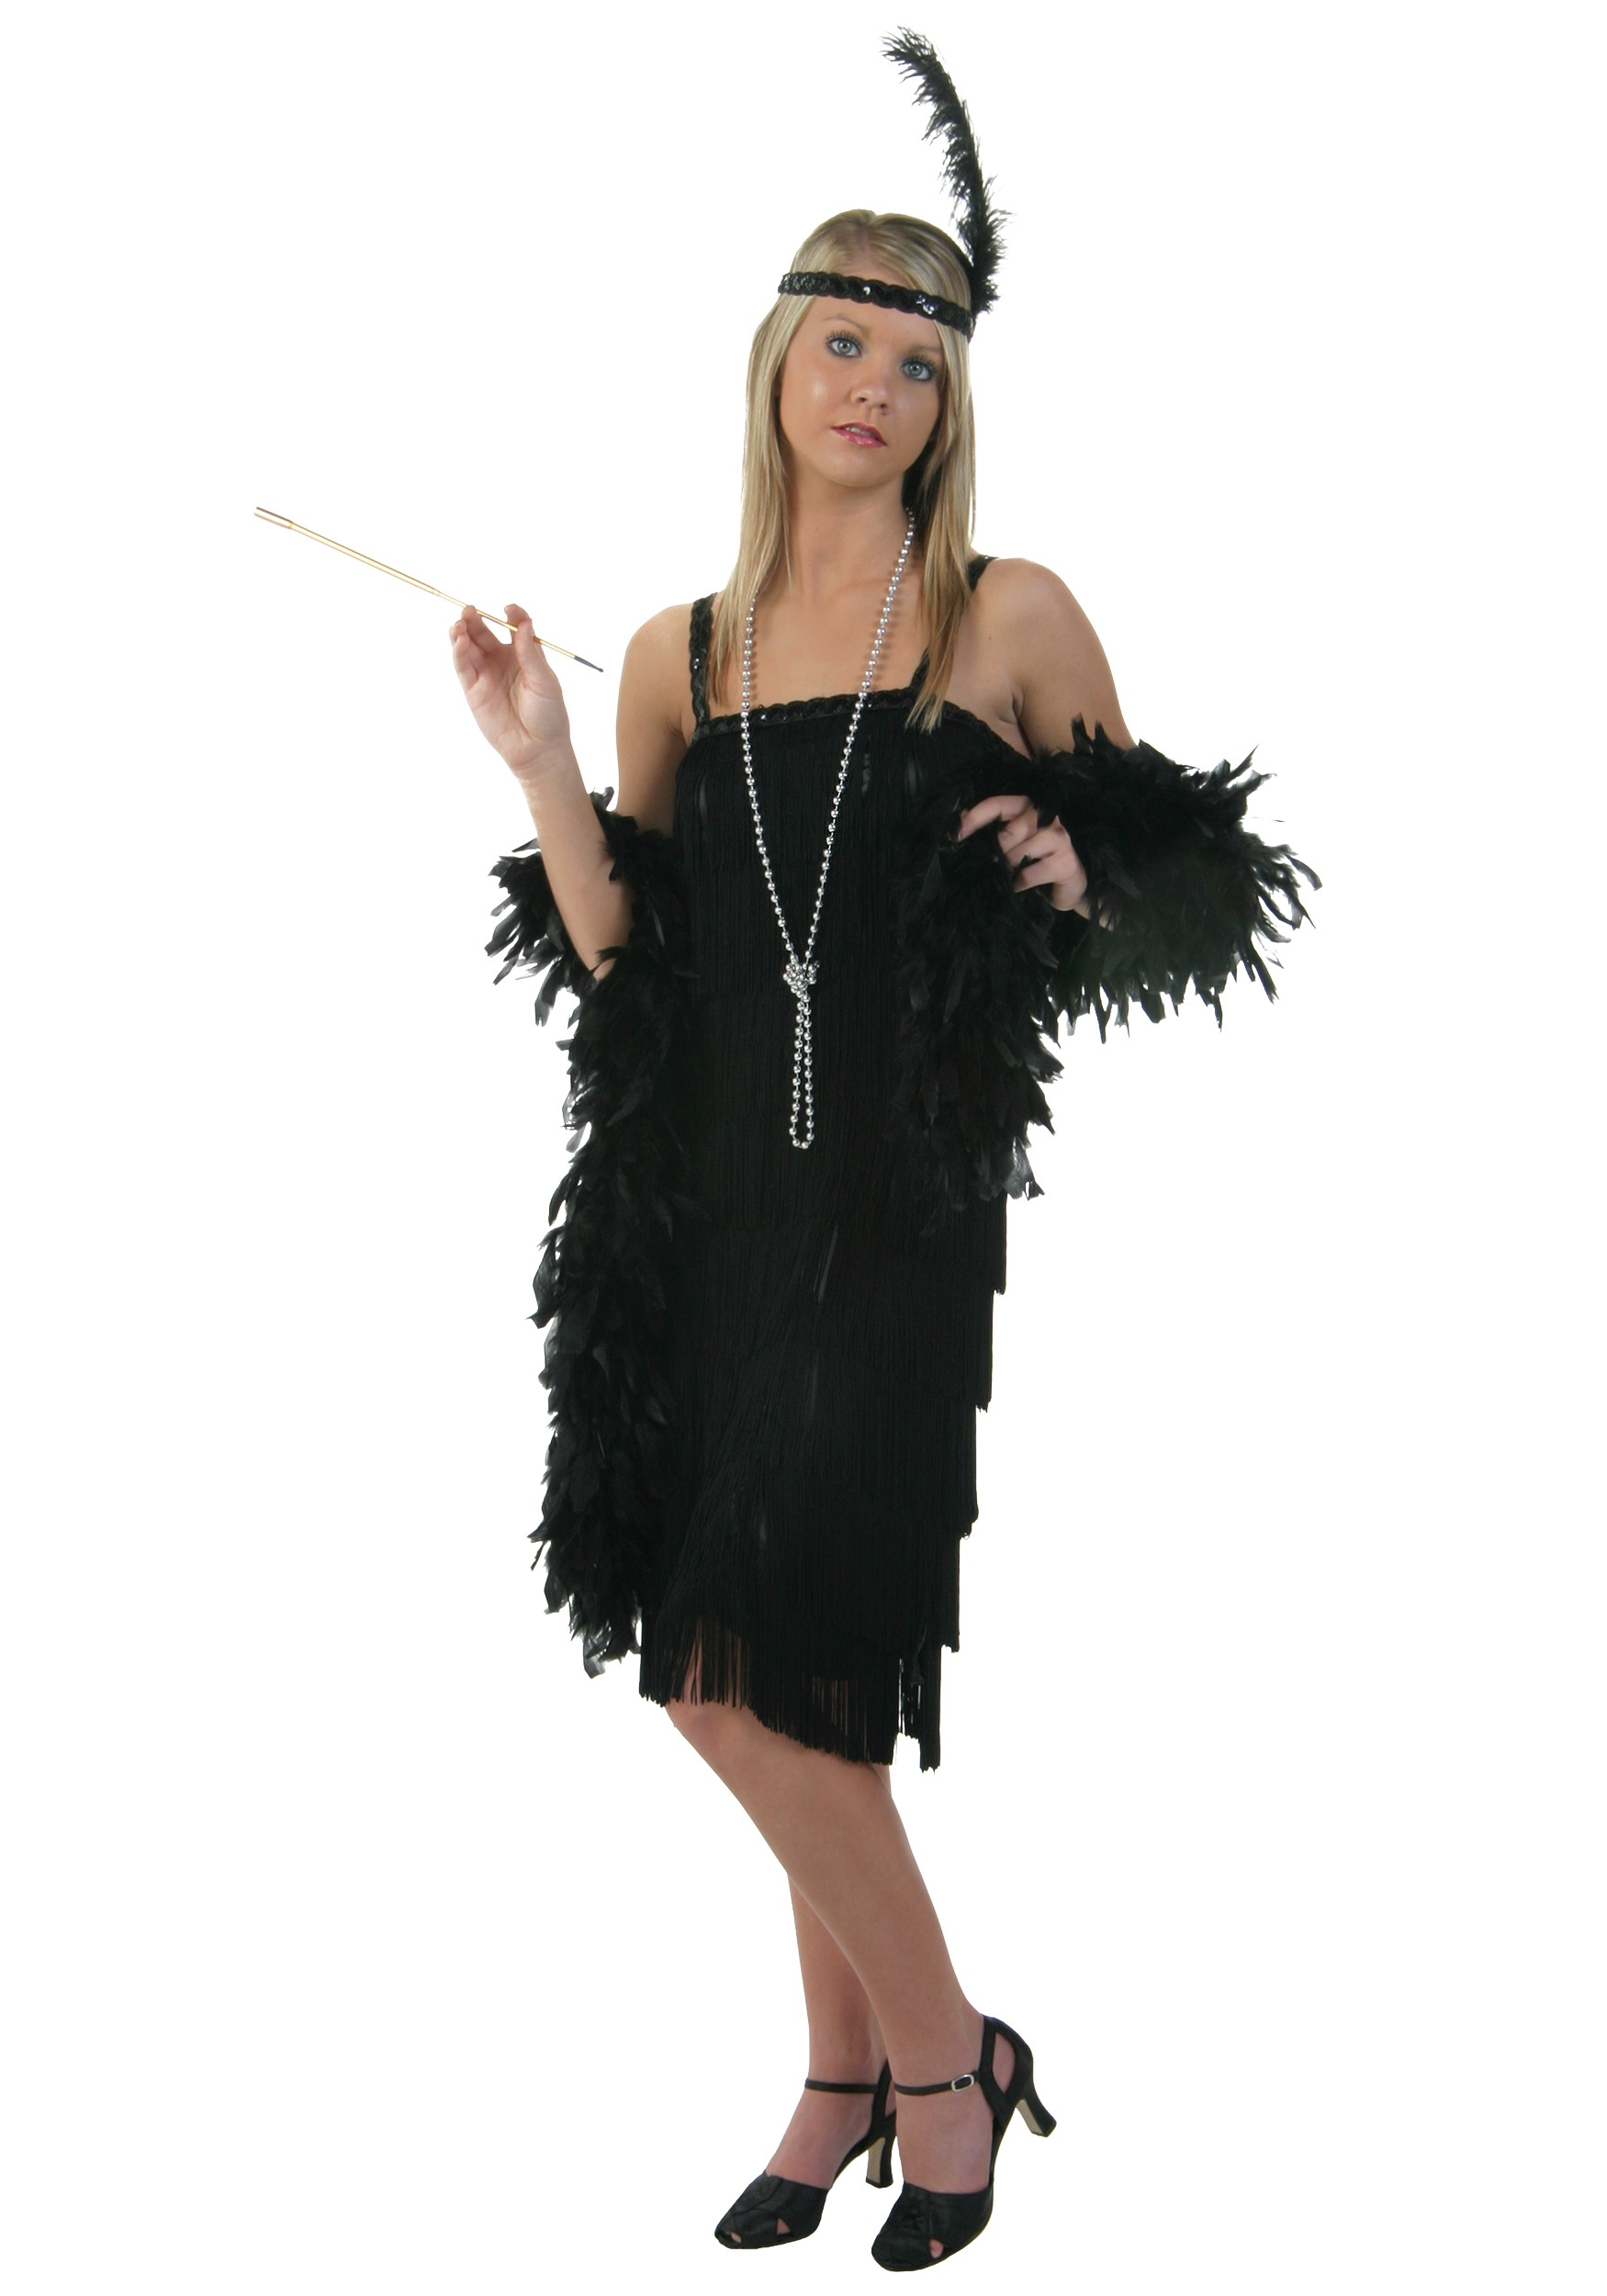 Black Charleston Flapper Dress  sc 1 st  Halloween Costumes & Black Charleston Flapper Dress - Halloween Costume Ideas 2016